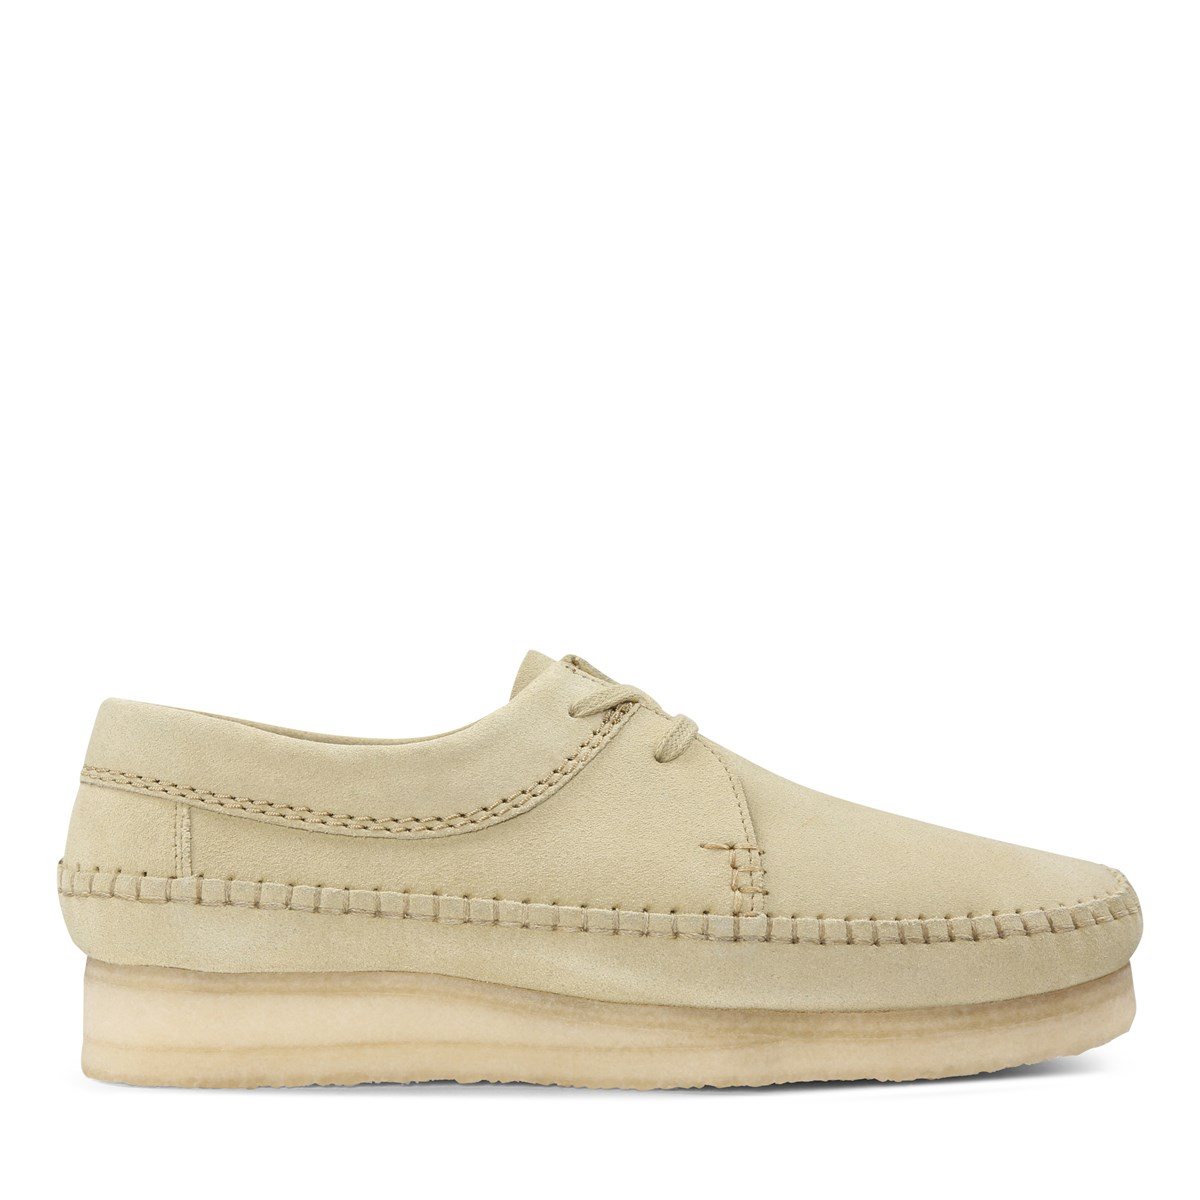 Men's Weaver Suede Shoes in Maple